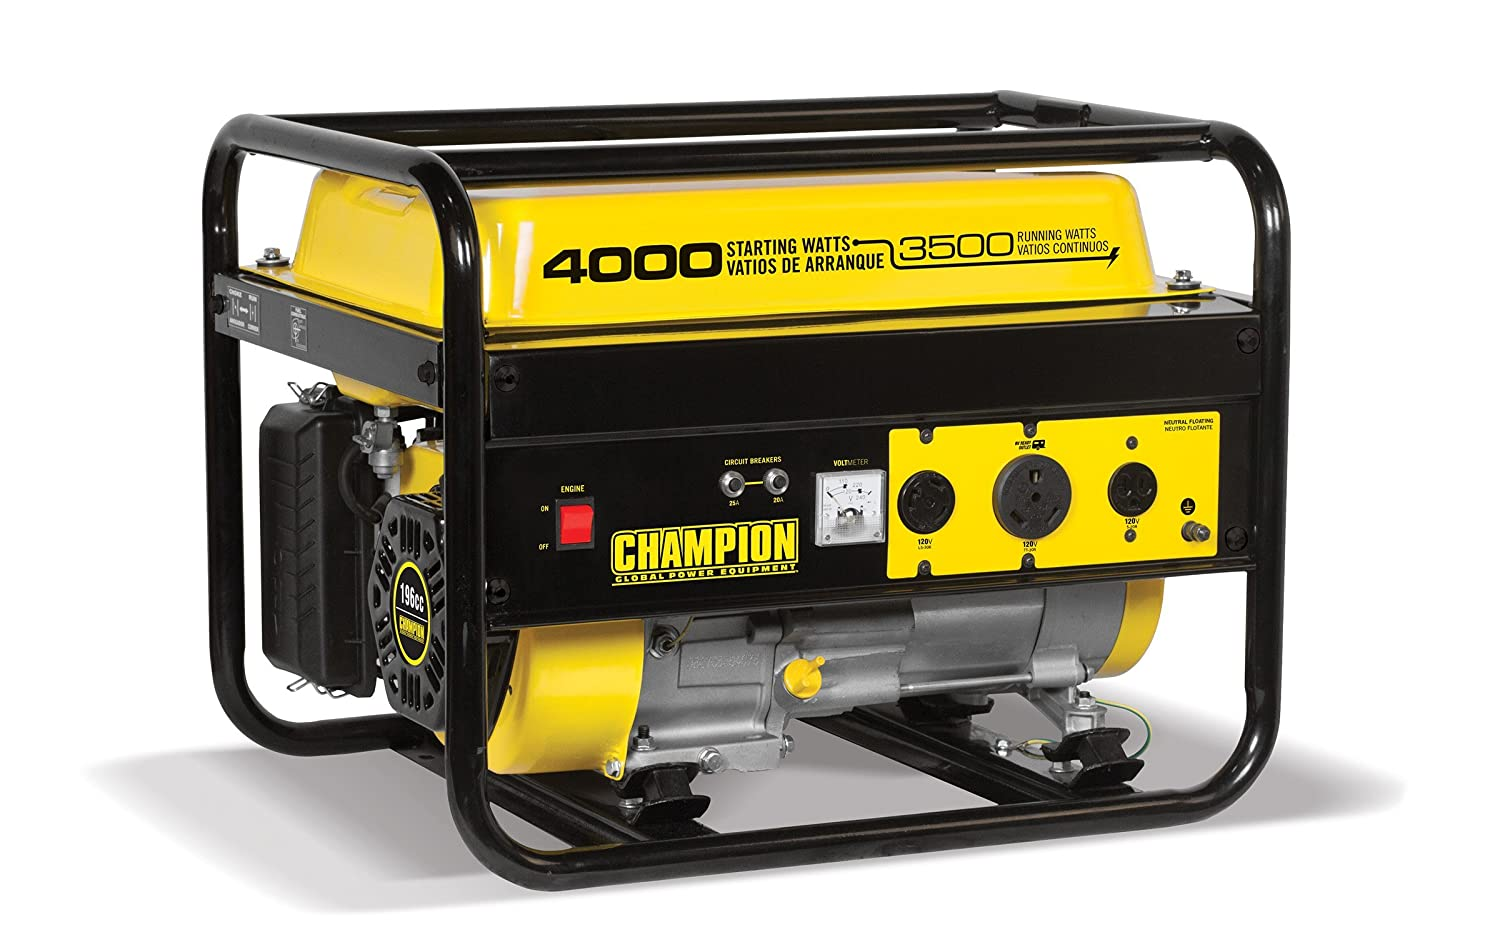 Champion 3500-Watt RV Ready Portable Generator EPA